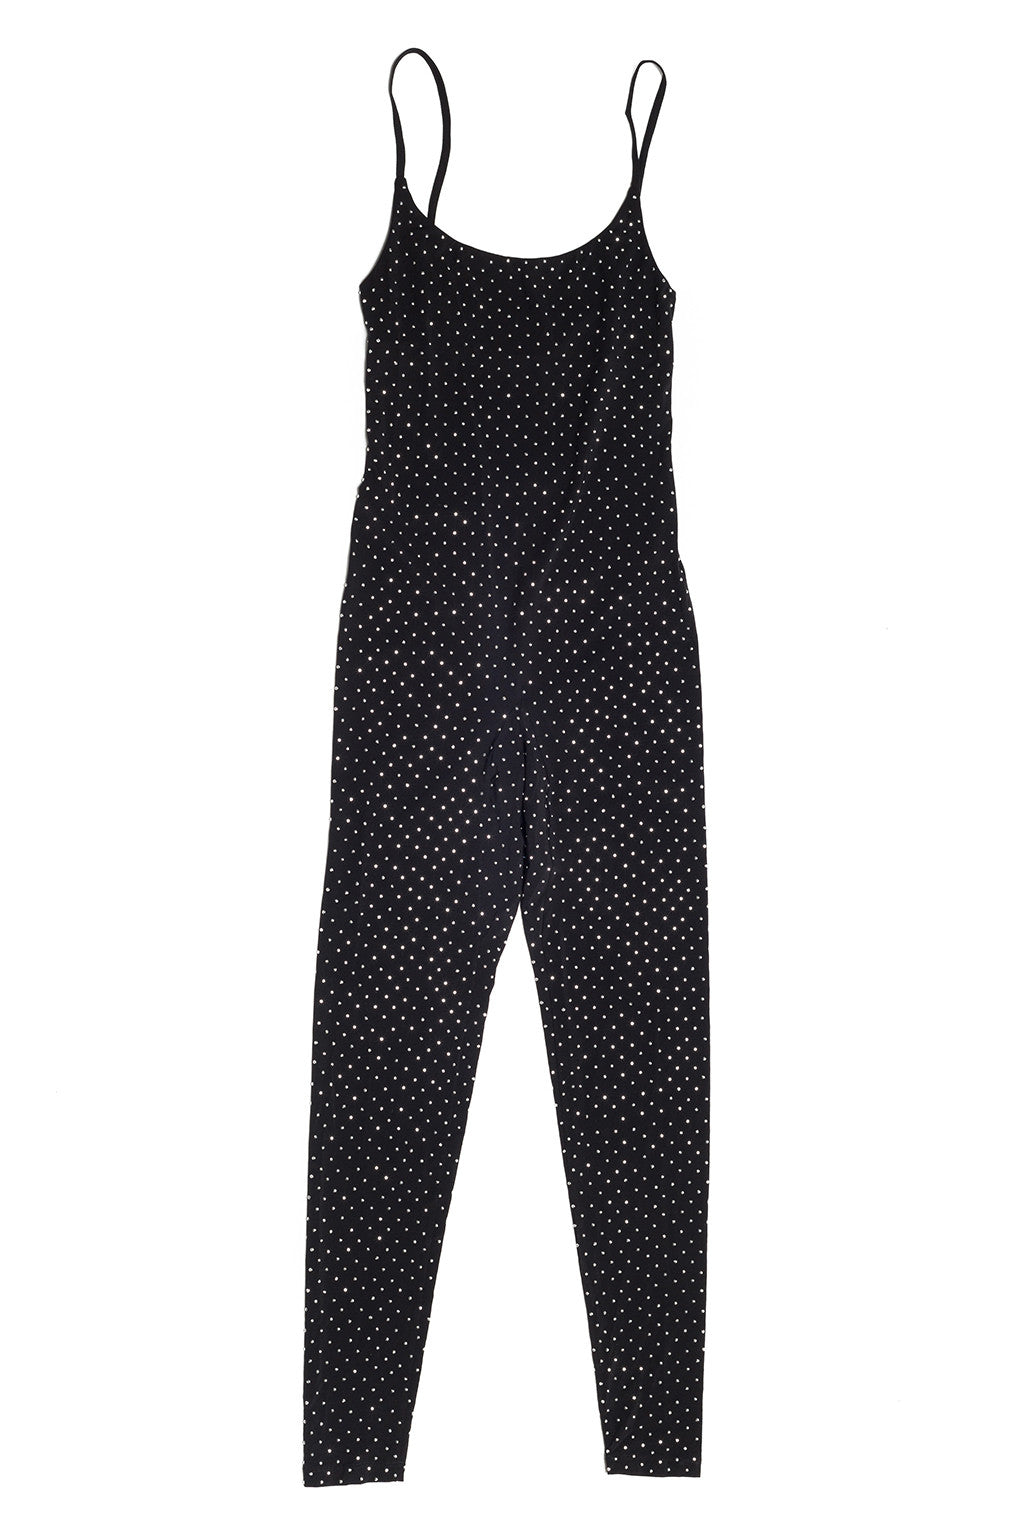 Studded Skin Jumpsuit - Faith Connexion - Jumpsuit - TOPGEARNY